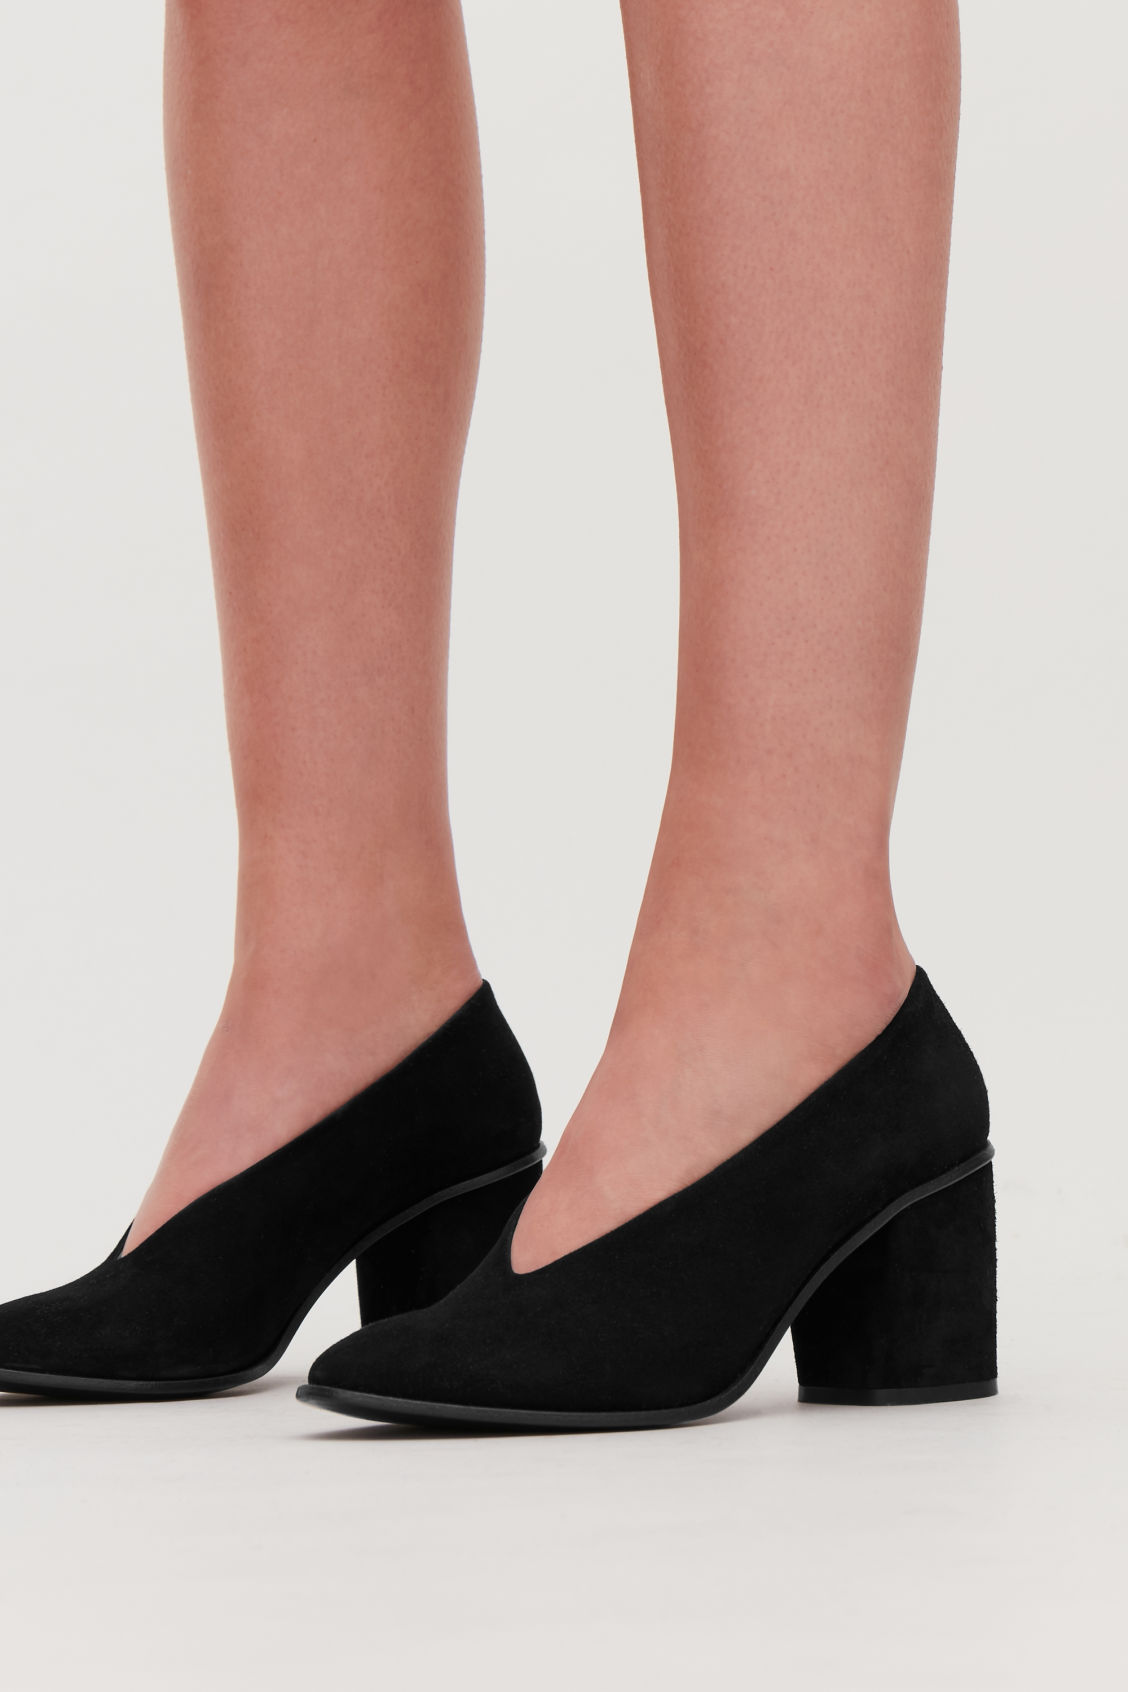 Detailed image of Cos chunky heel pumps in black